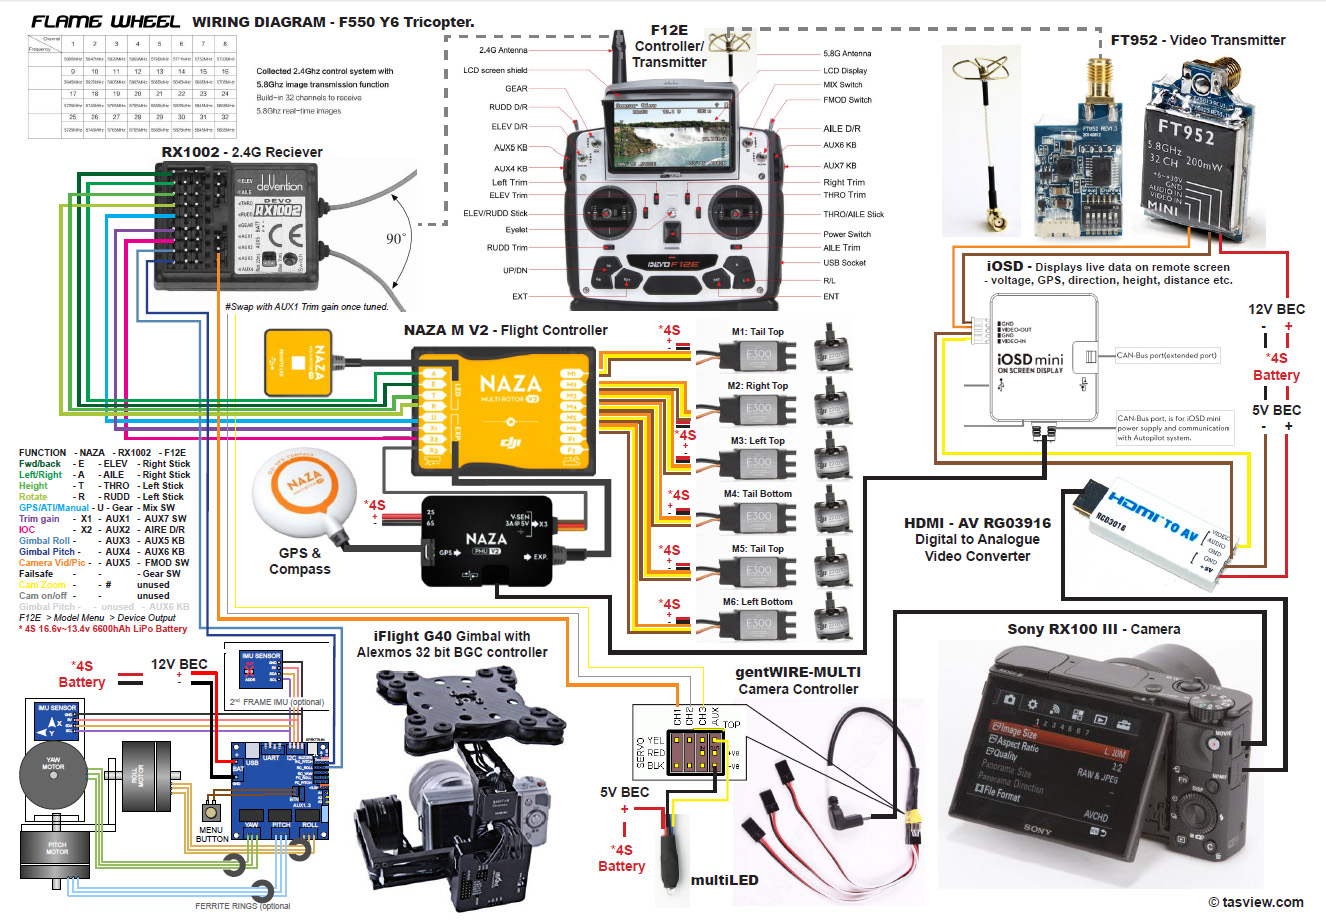 wiring_diagram f550y6 naza v2 wiring diagram diagram wiring diagrams for diy car repairs naza wiring diagram at gsmx.co